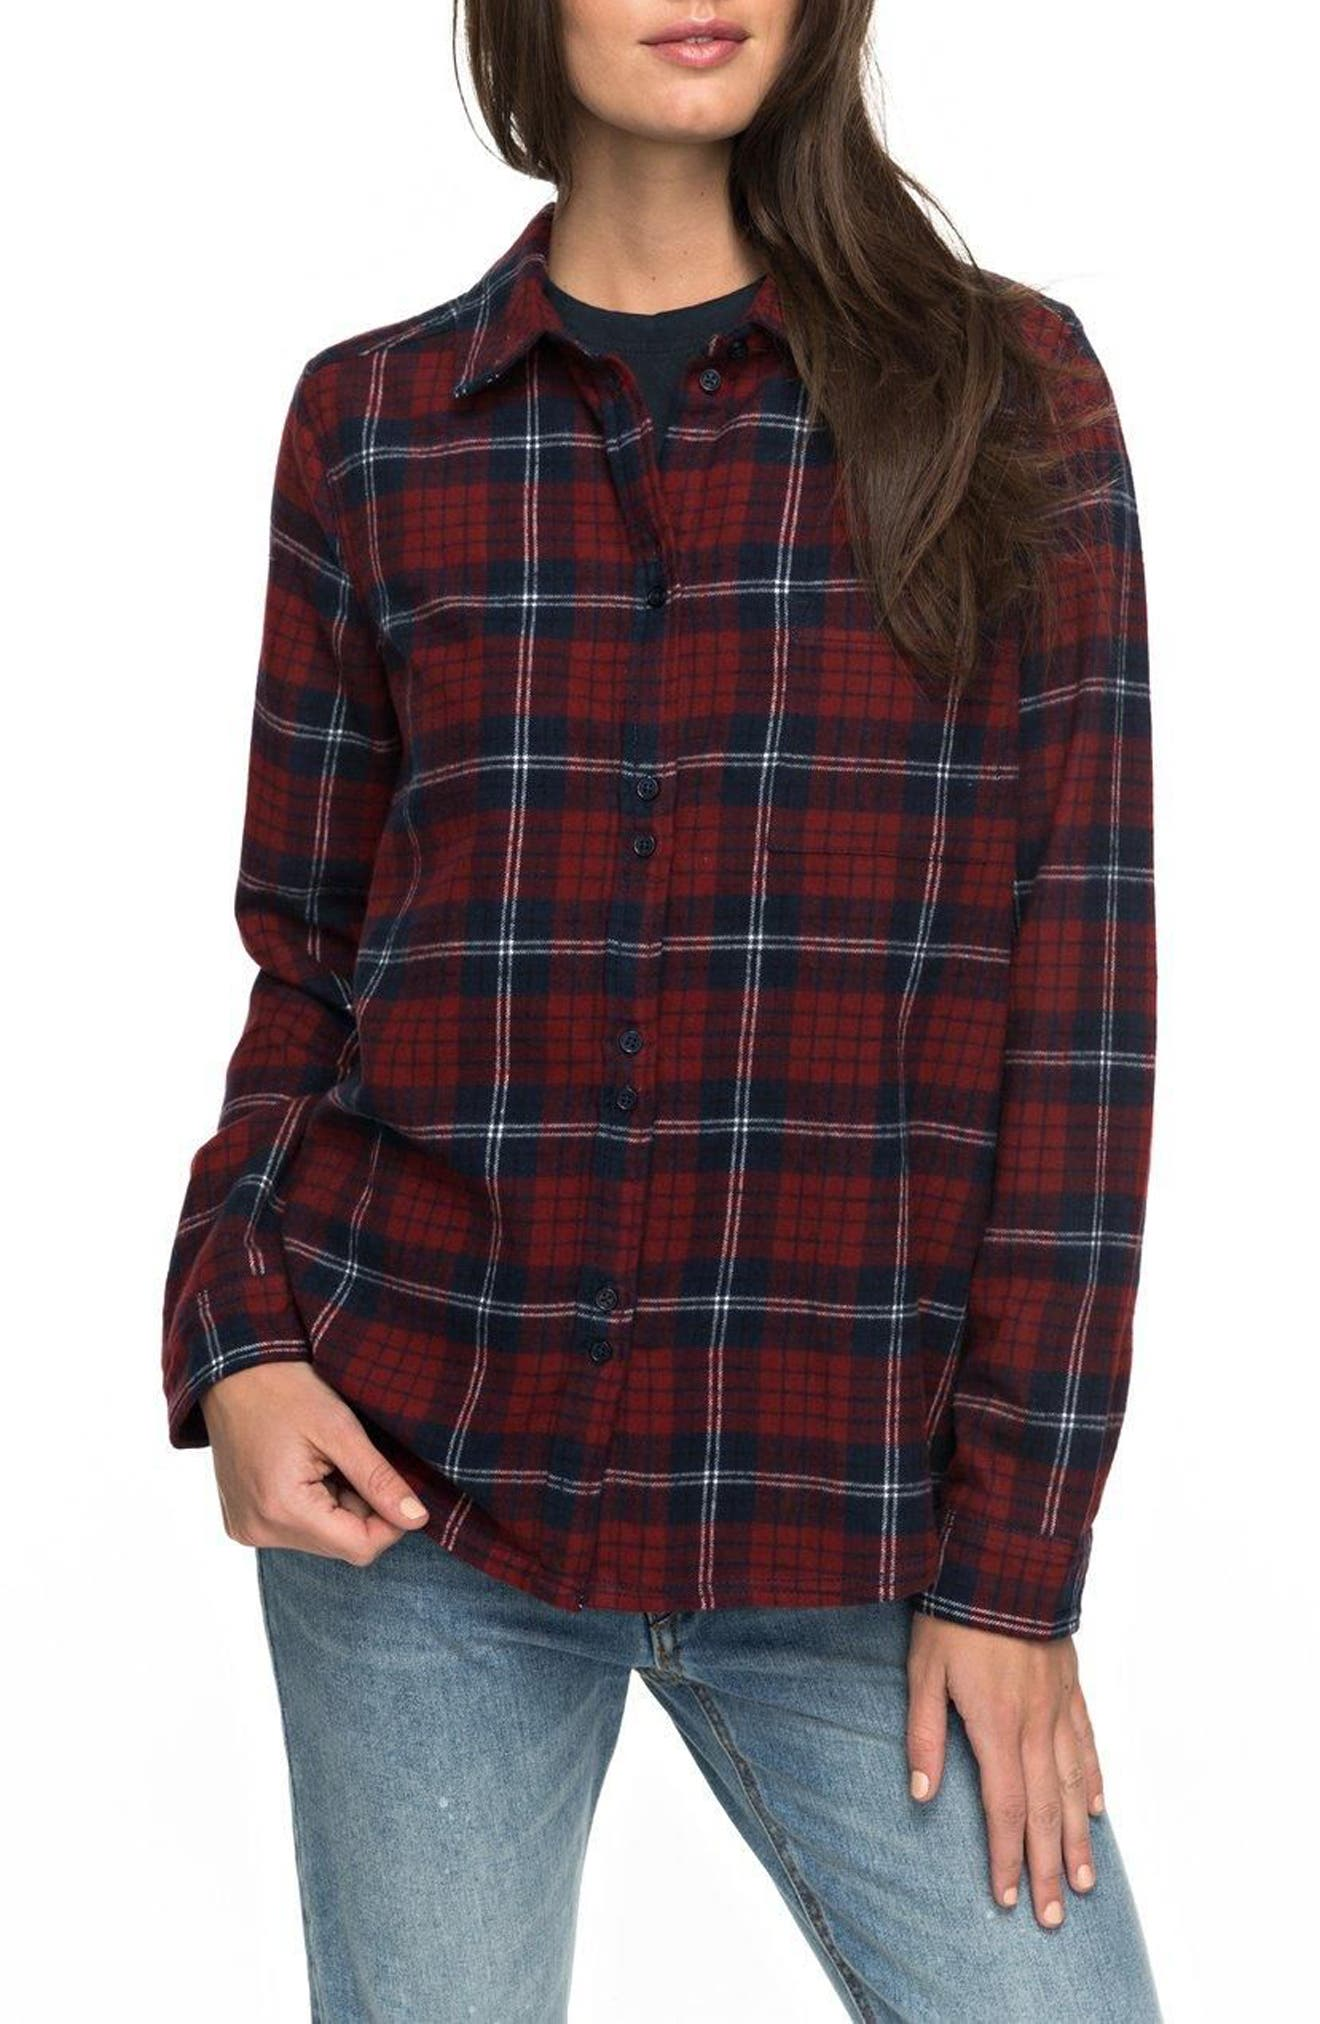 Main Image - Roxy Heavy Feelings Plaid Shirt